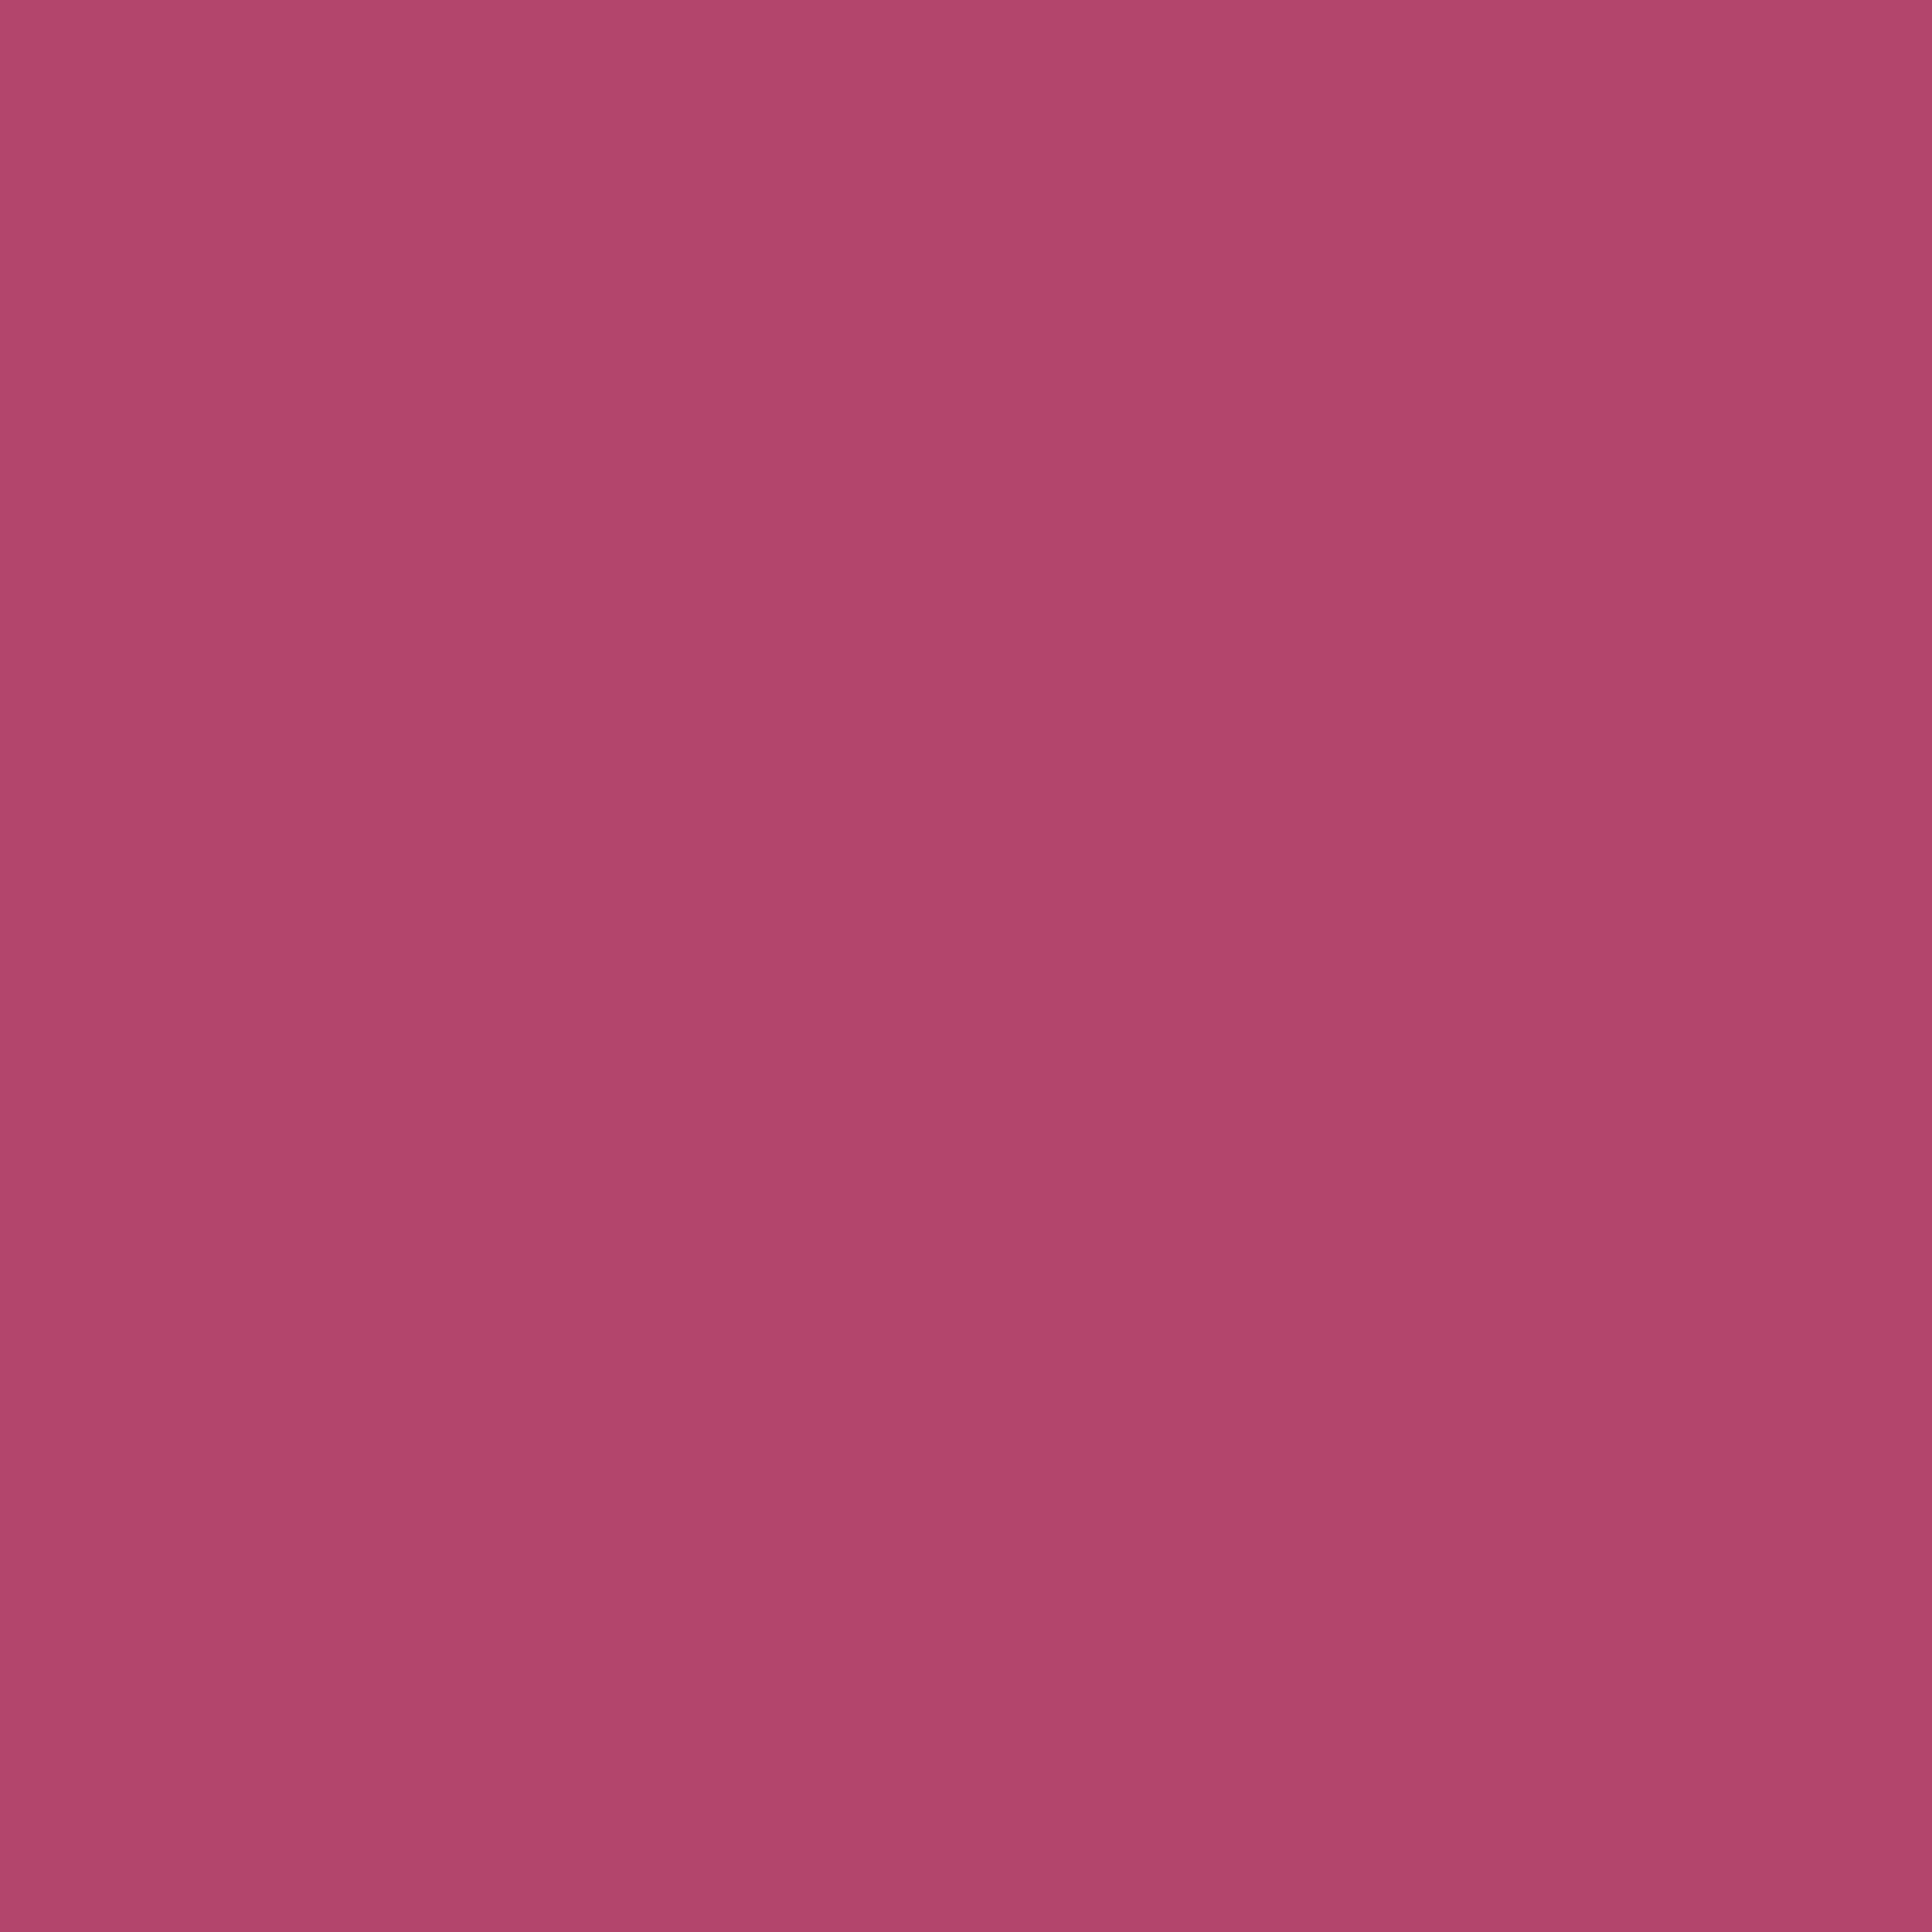 2048x2048 Raspberry Rose Solid Color Background